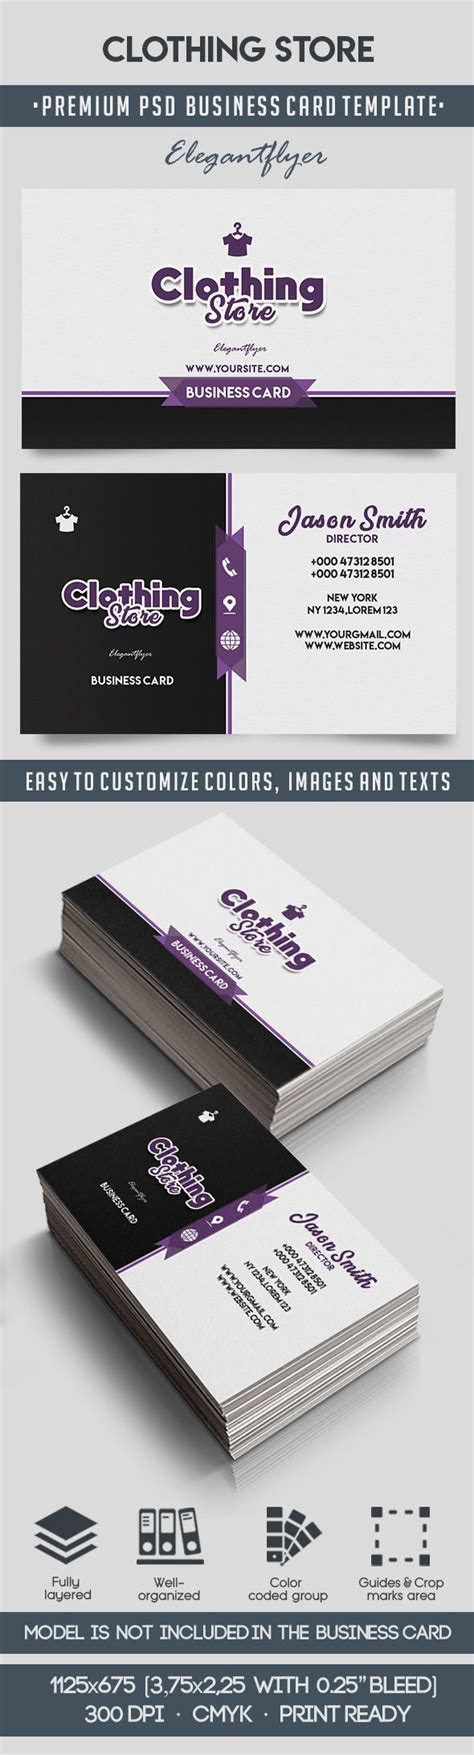 boutique business card psd template clothing store business card templates psd by elegantflyer